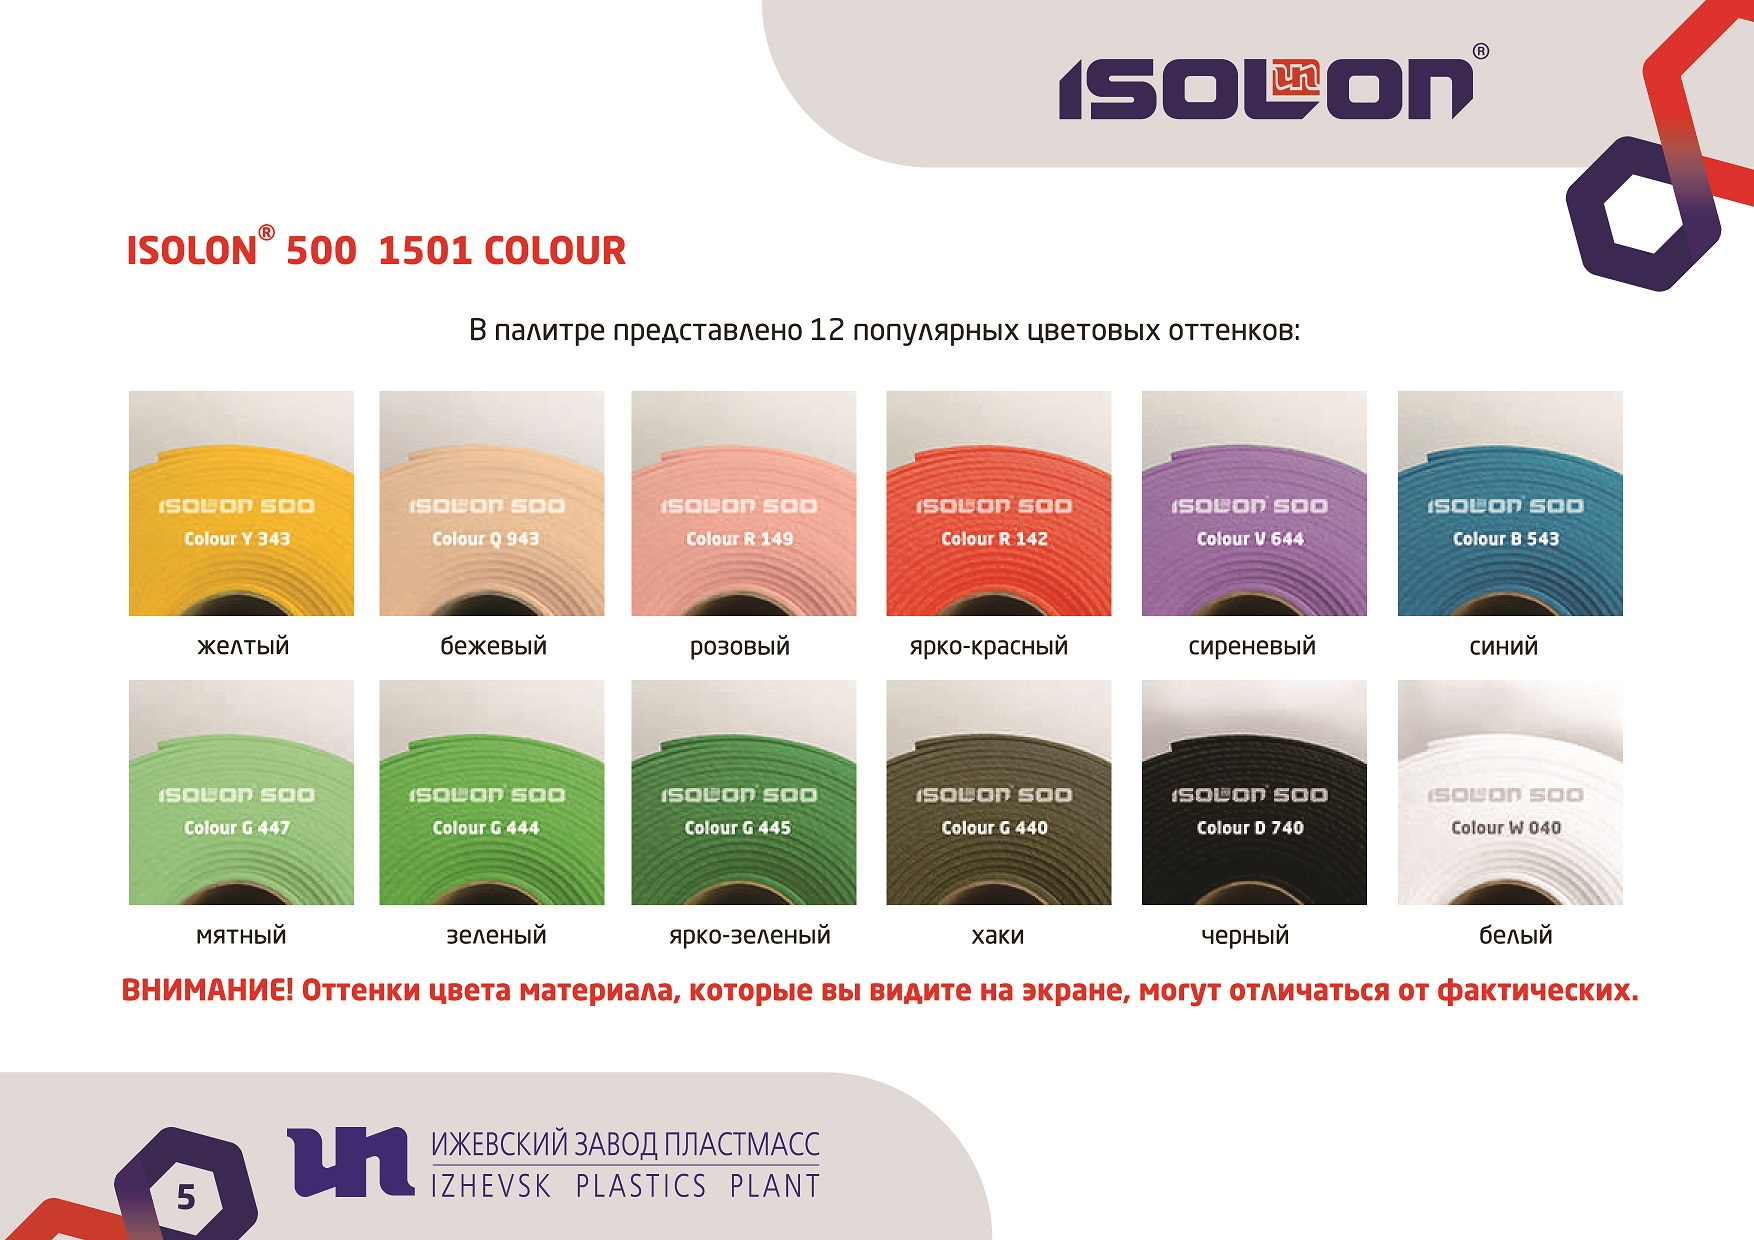 ISOLON 500 1501 Colour